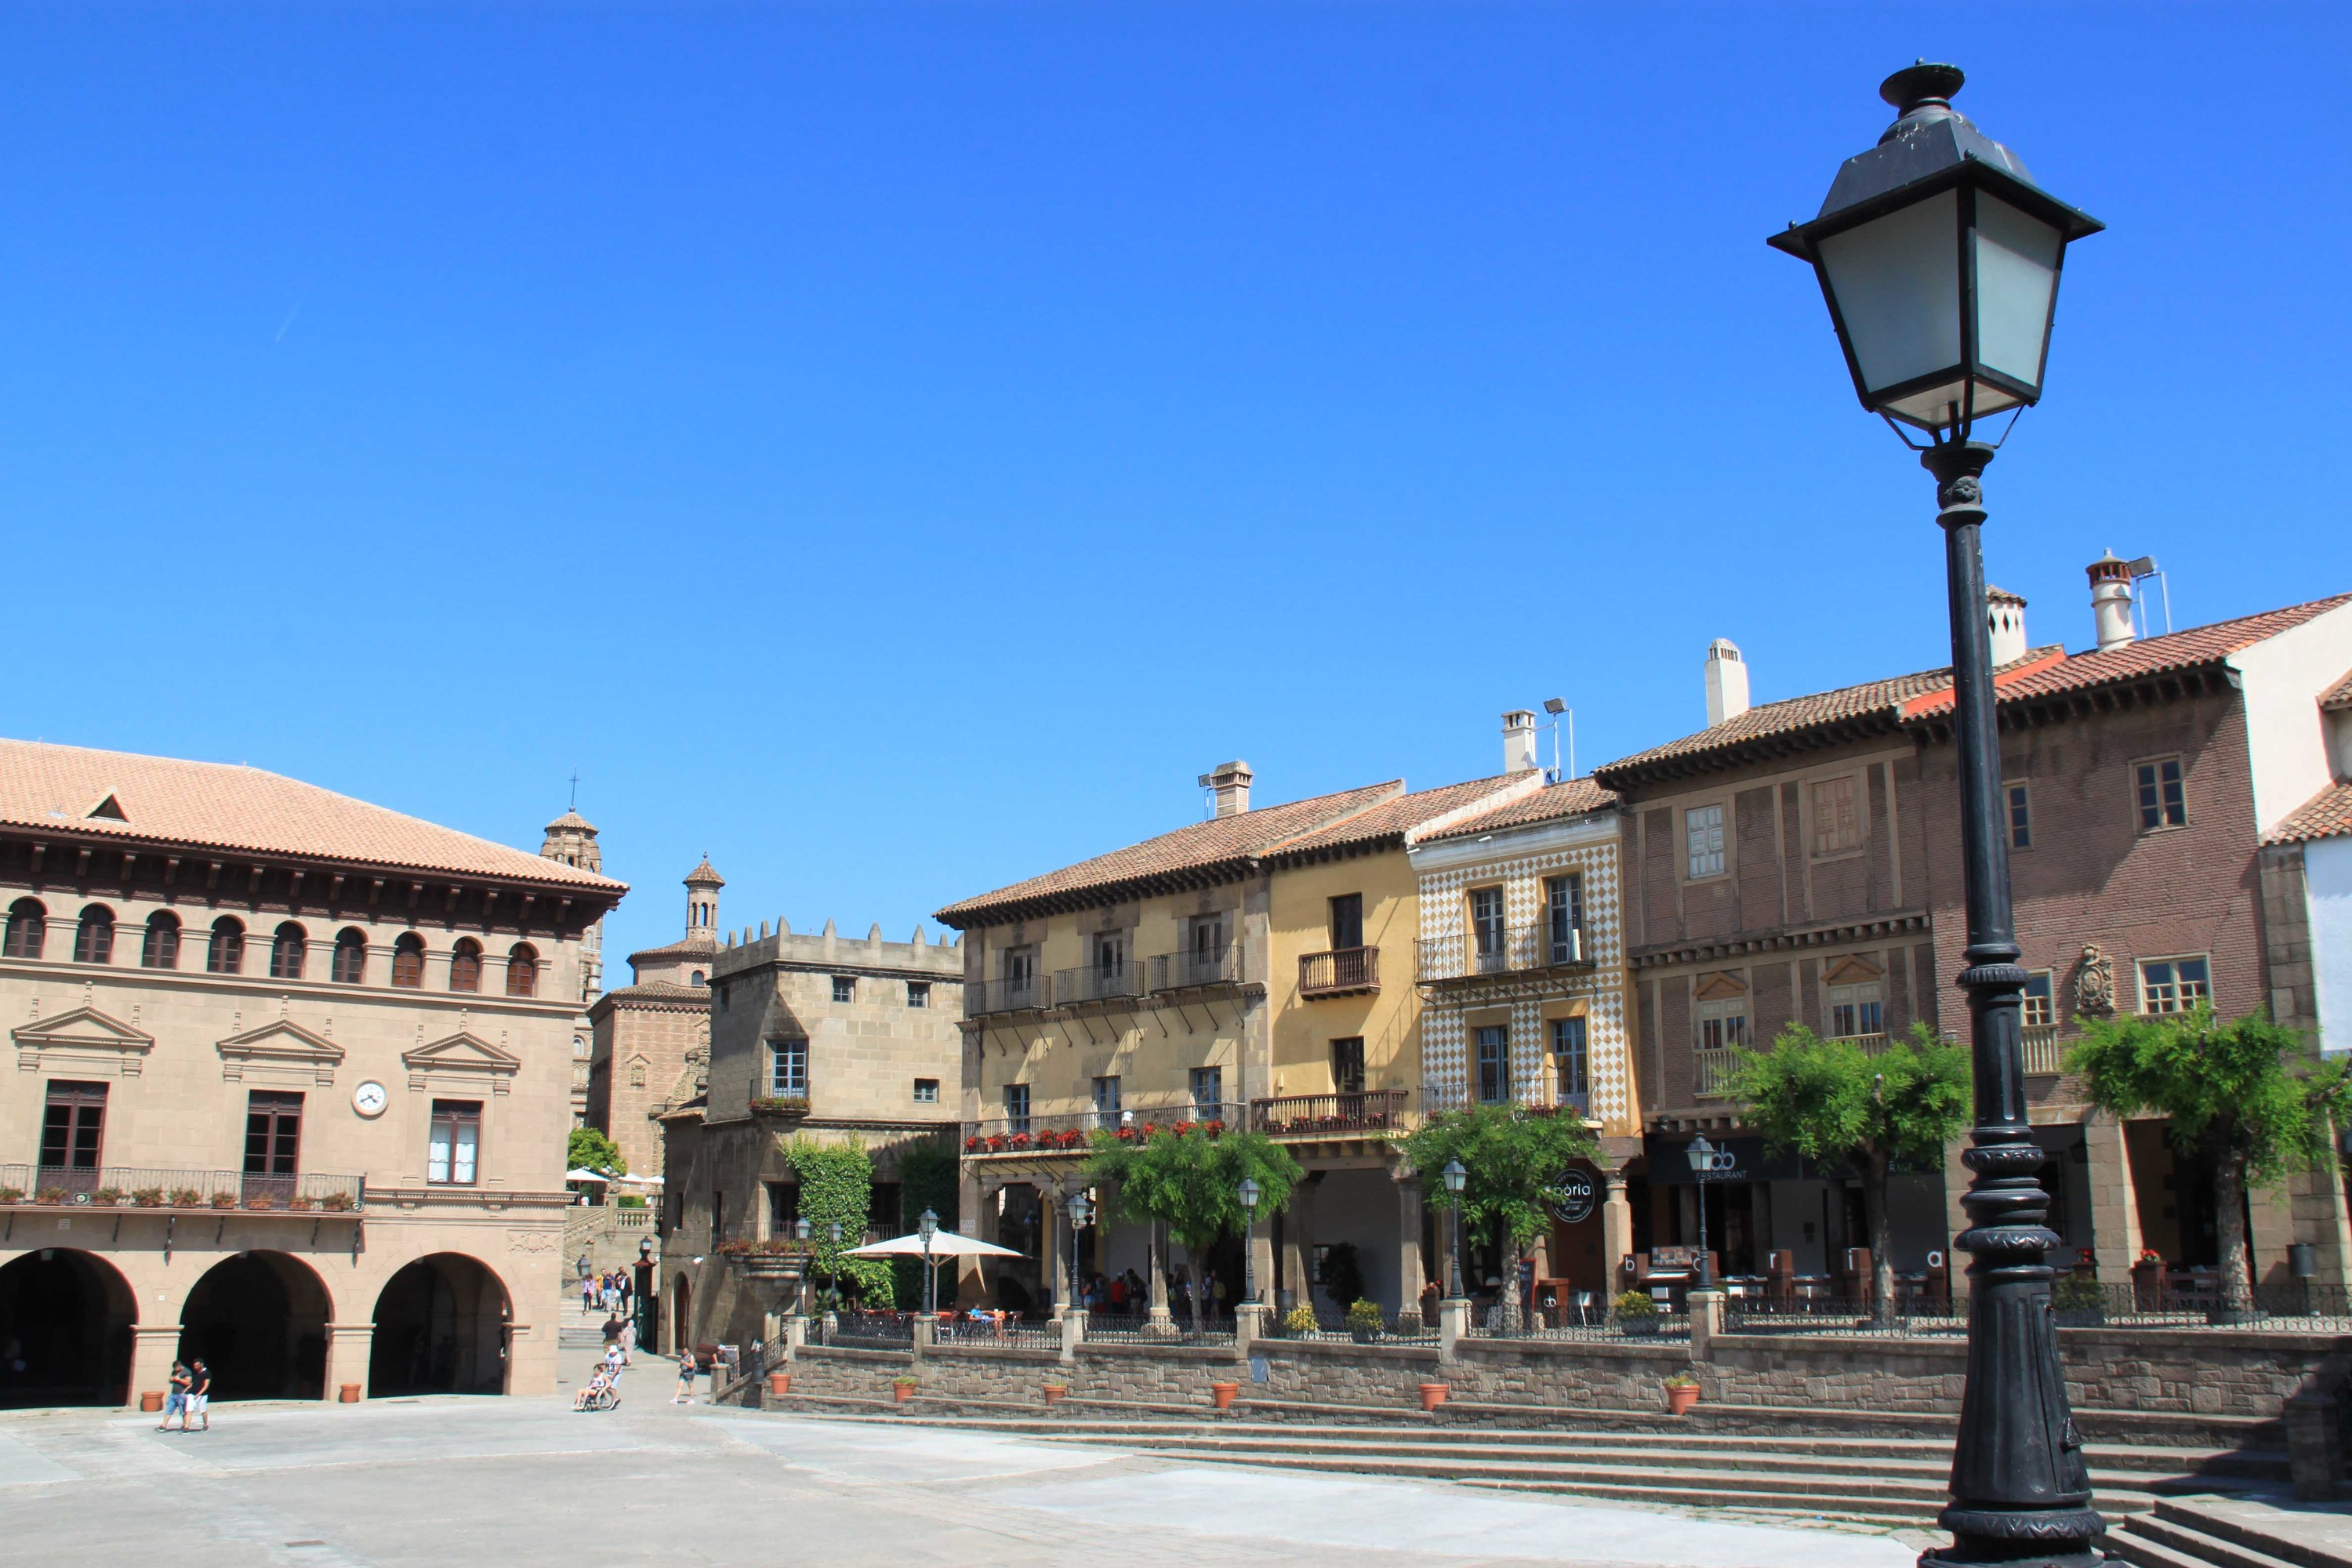 Architecture and culture in Poble Espanyol